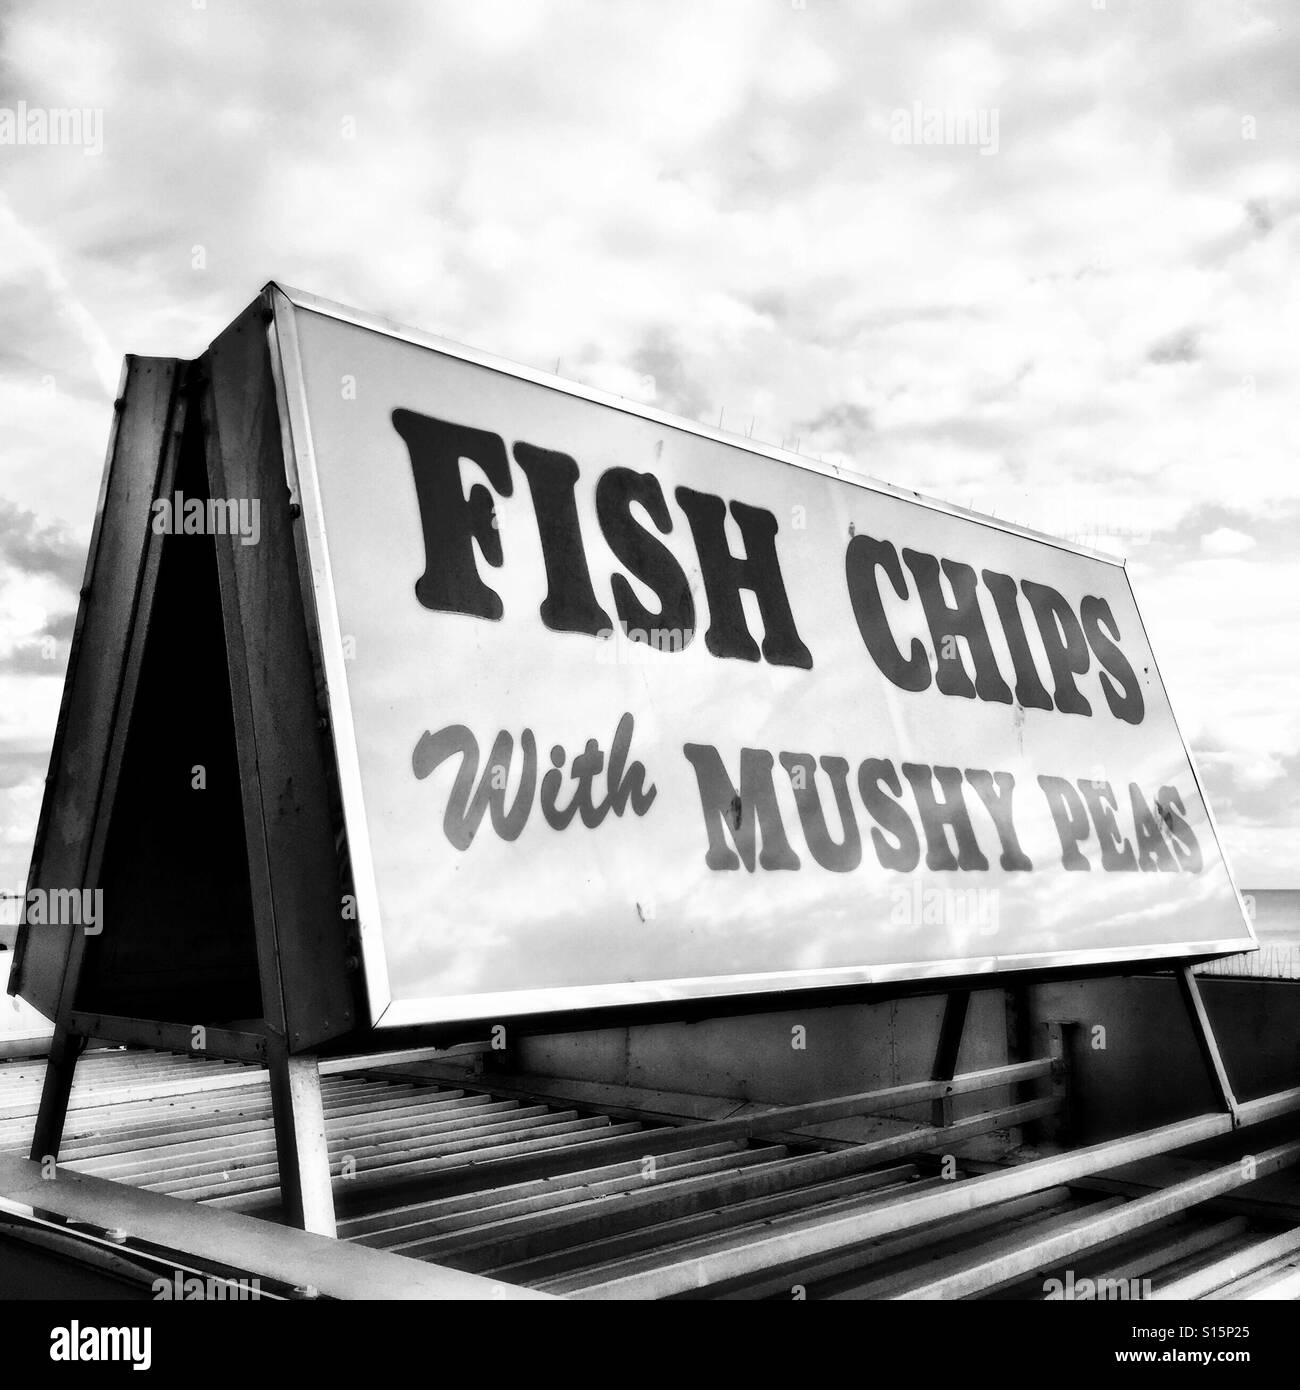 British seafront fast food sign 'FISH CHIPS With MUSHY PEAS' in black & white, Brighton, England - Stock Image